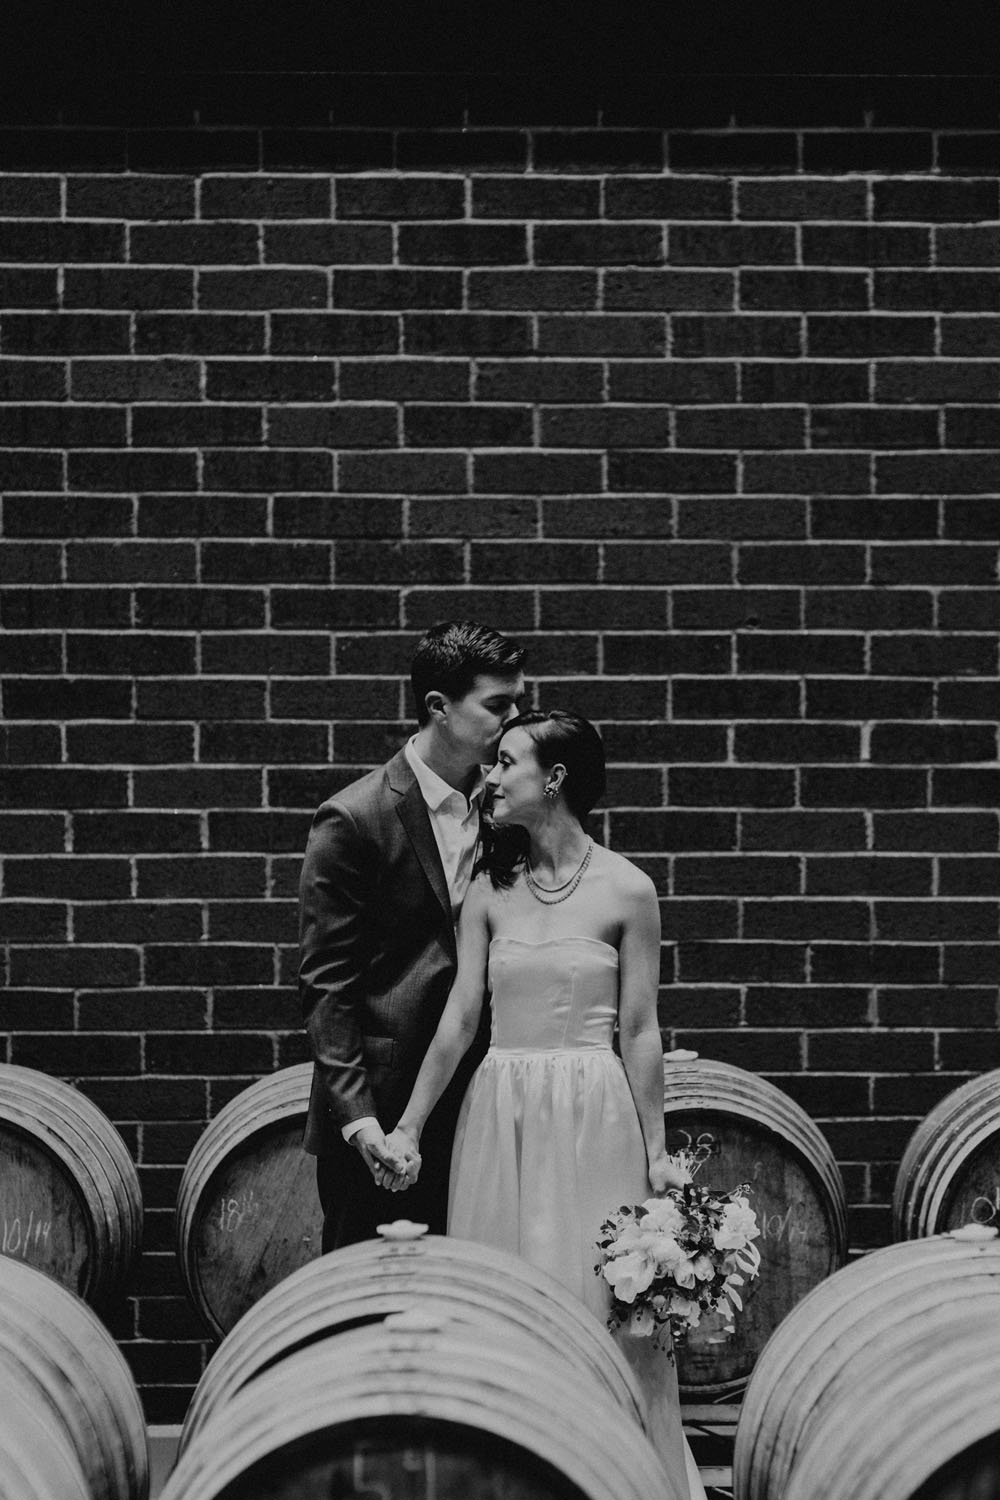 Atalie Ann Photo - Michelle + Matt - BW -1123.jpg